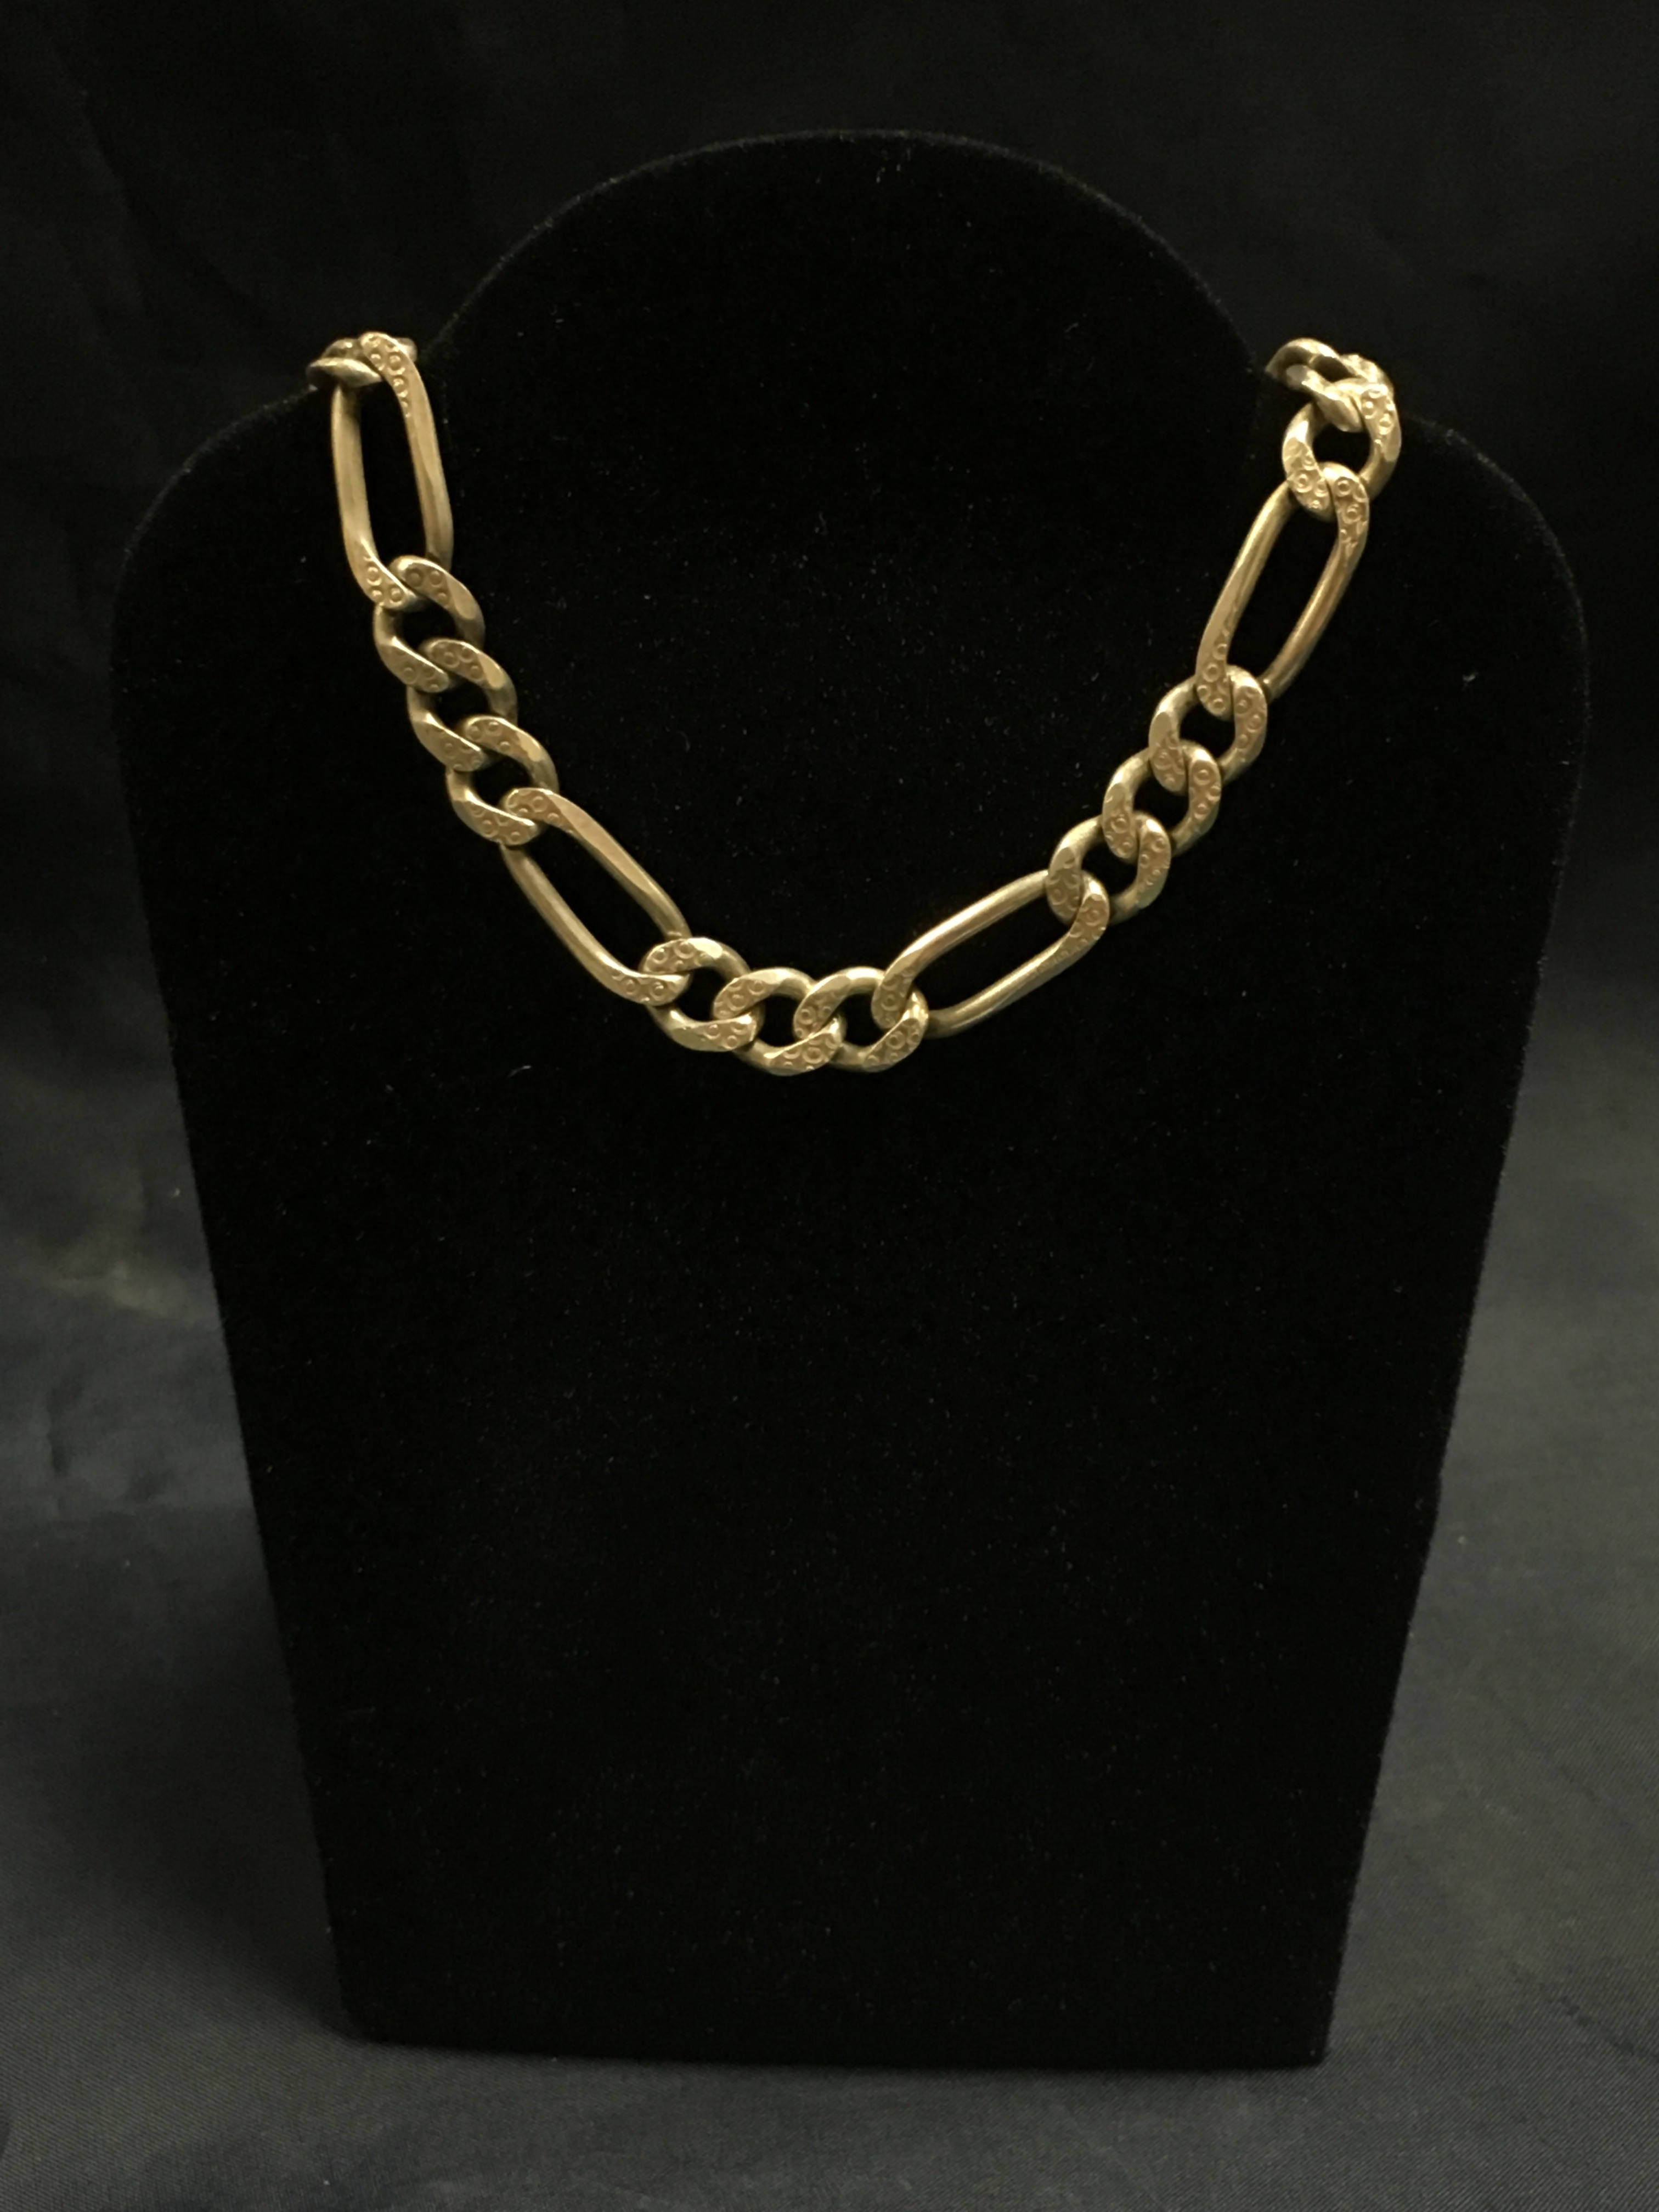 .925 SILVER FIGARO LINK CHAIN. LENGTH: 22